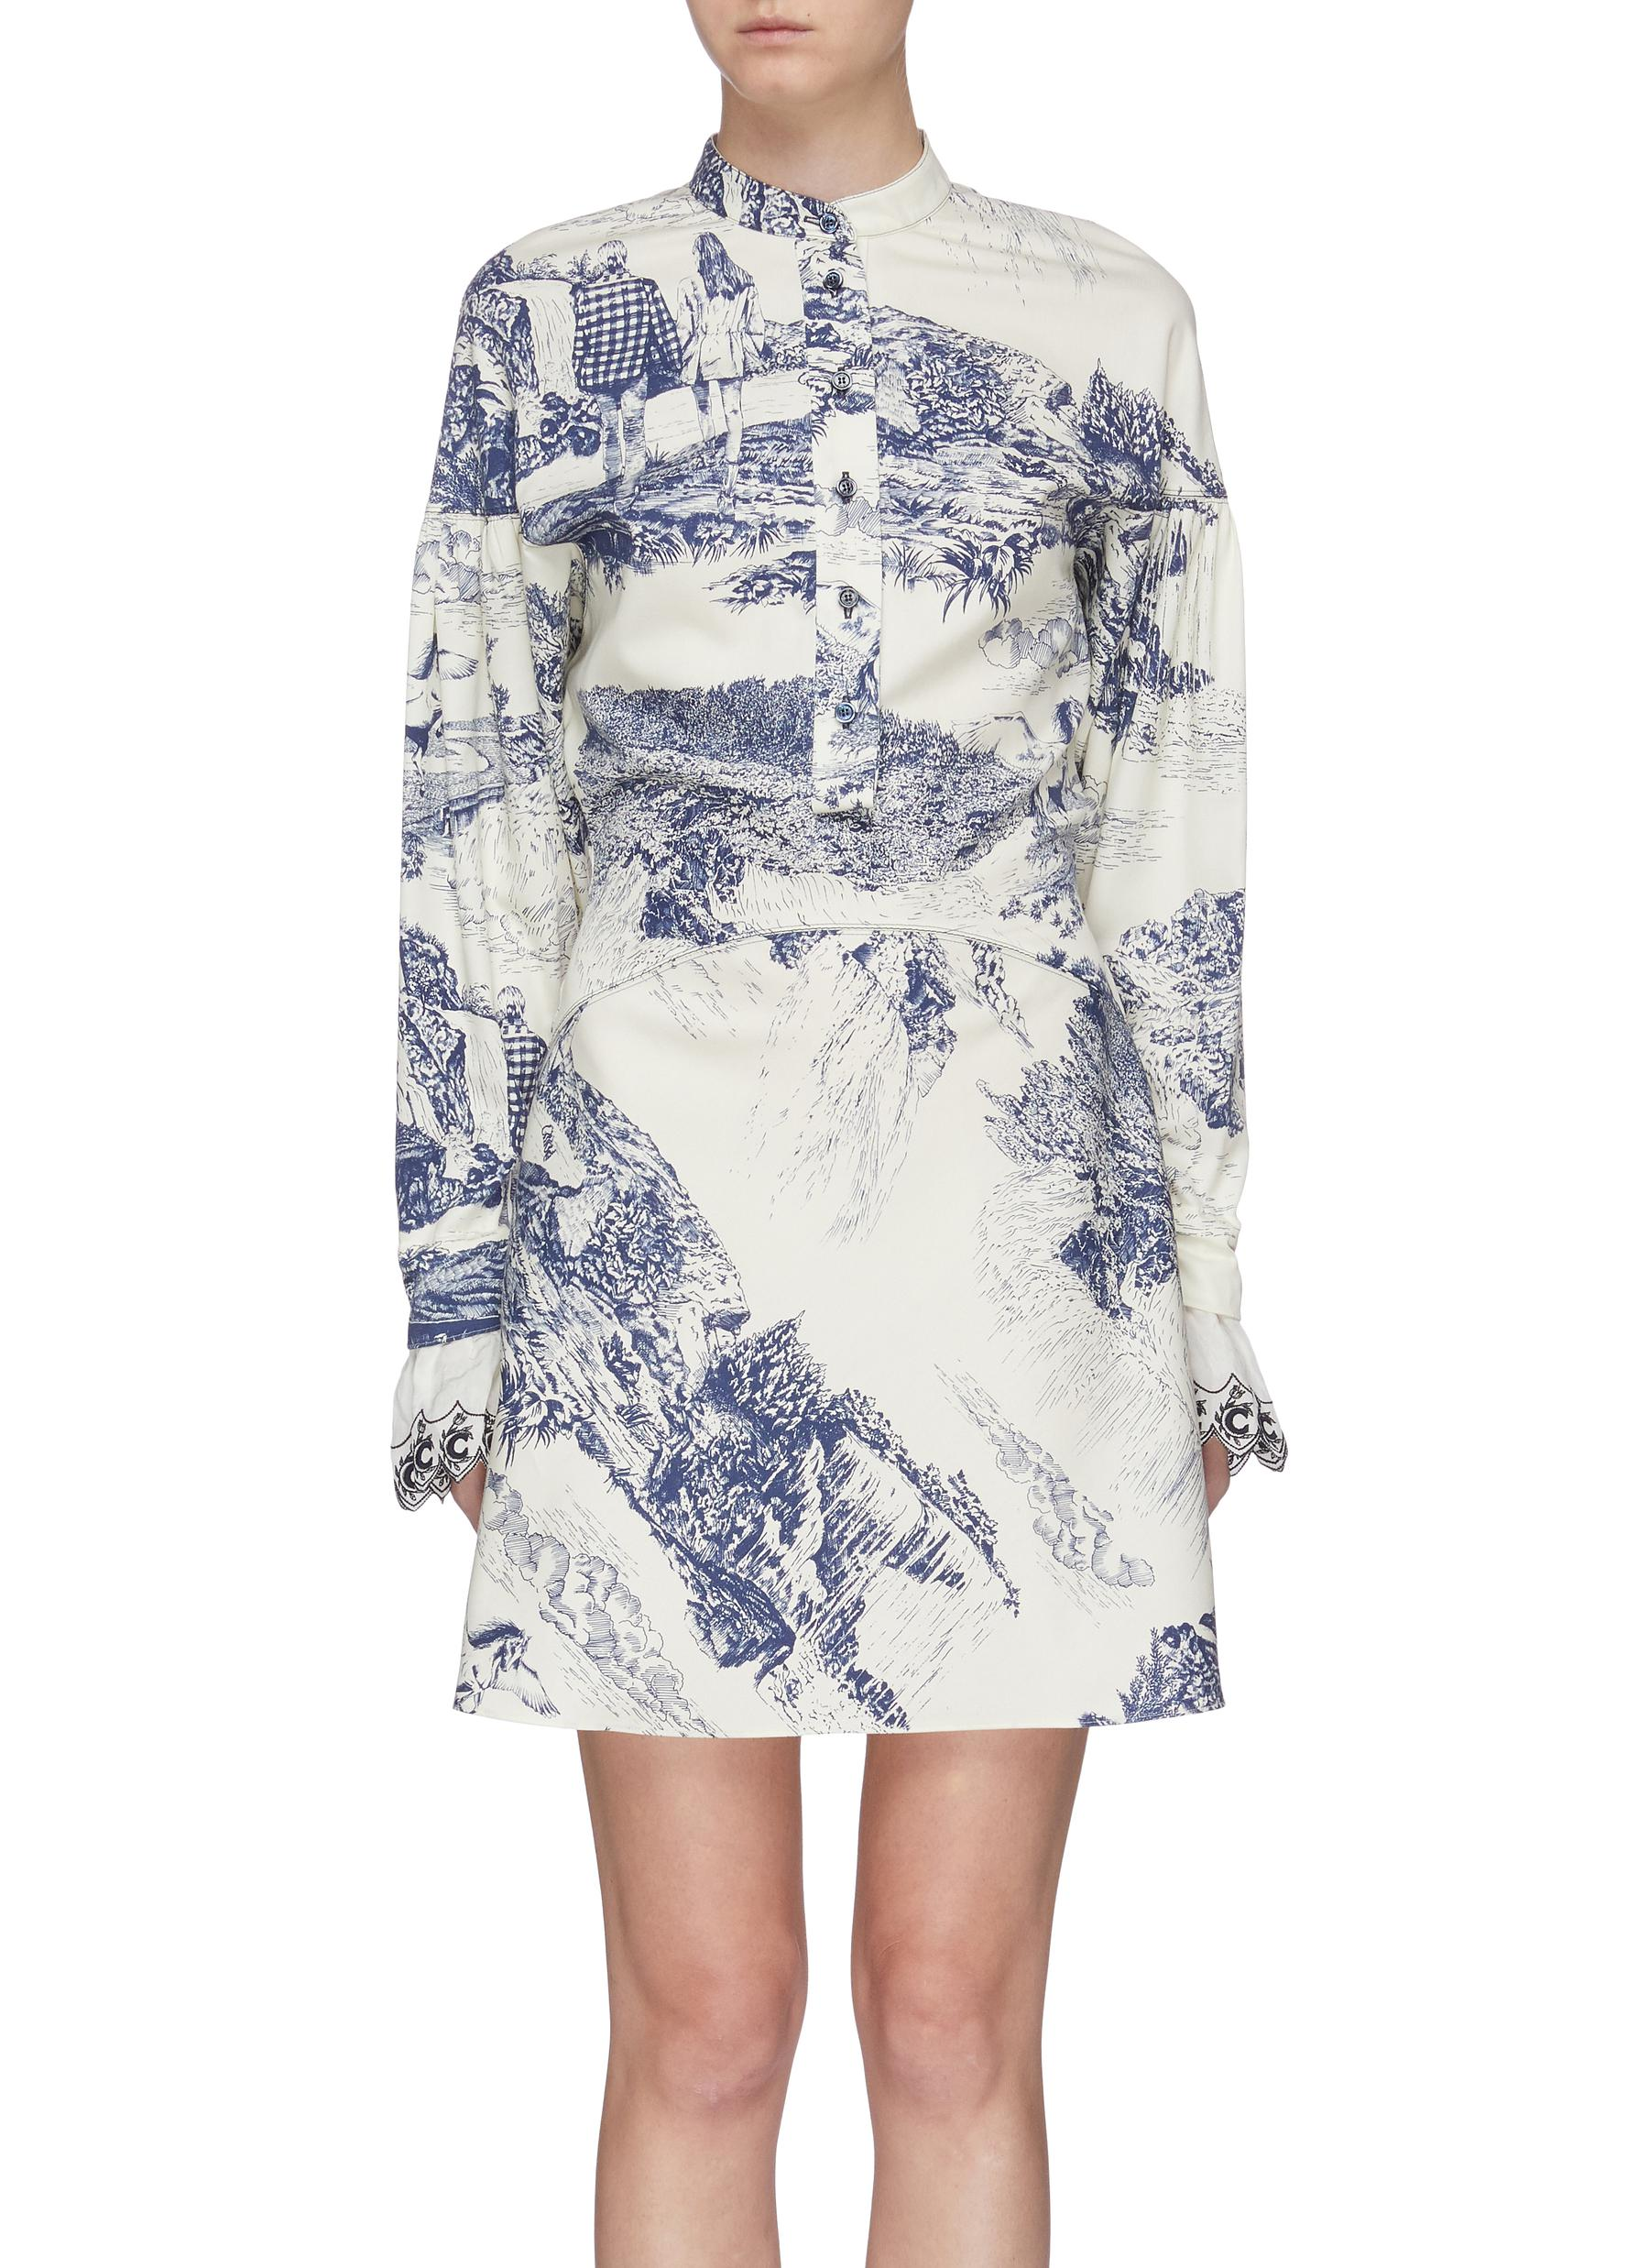 Scallop cuff Toile De Jouy print dress by Chloé